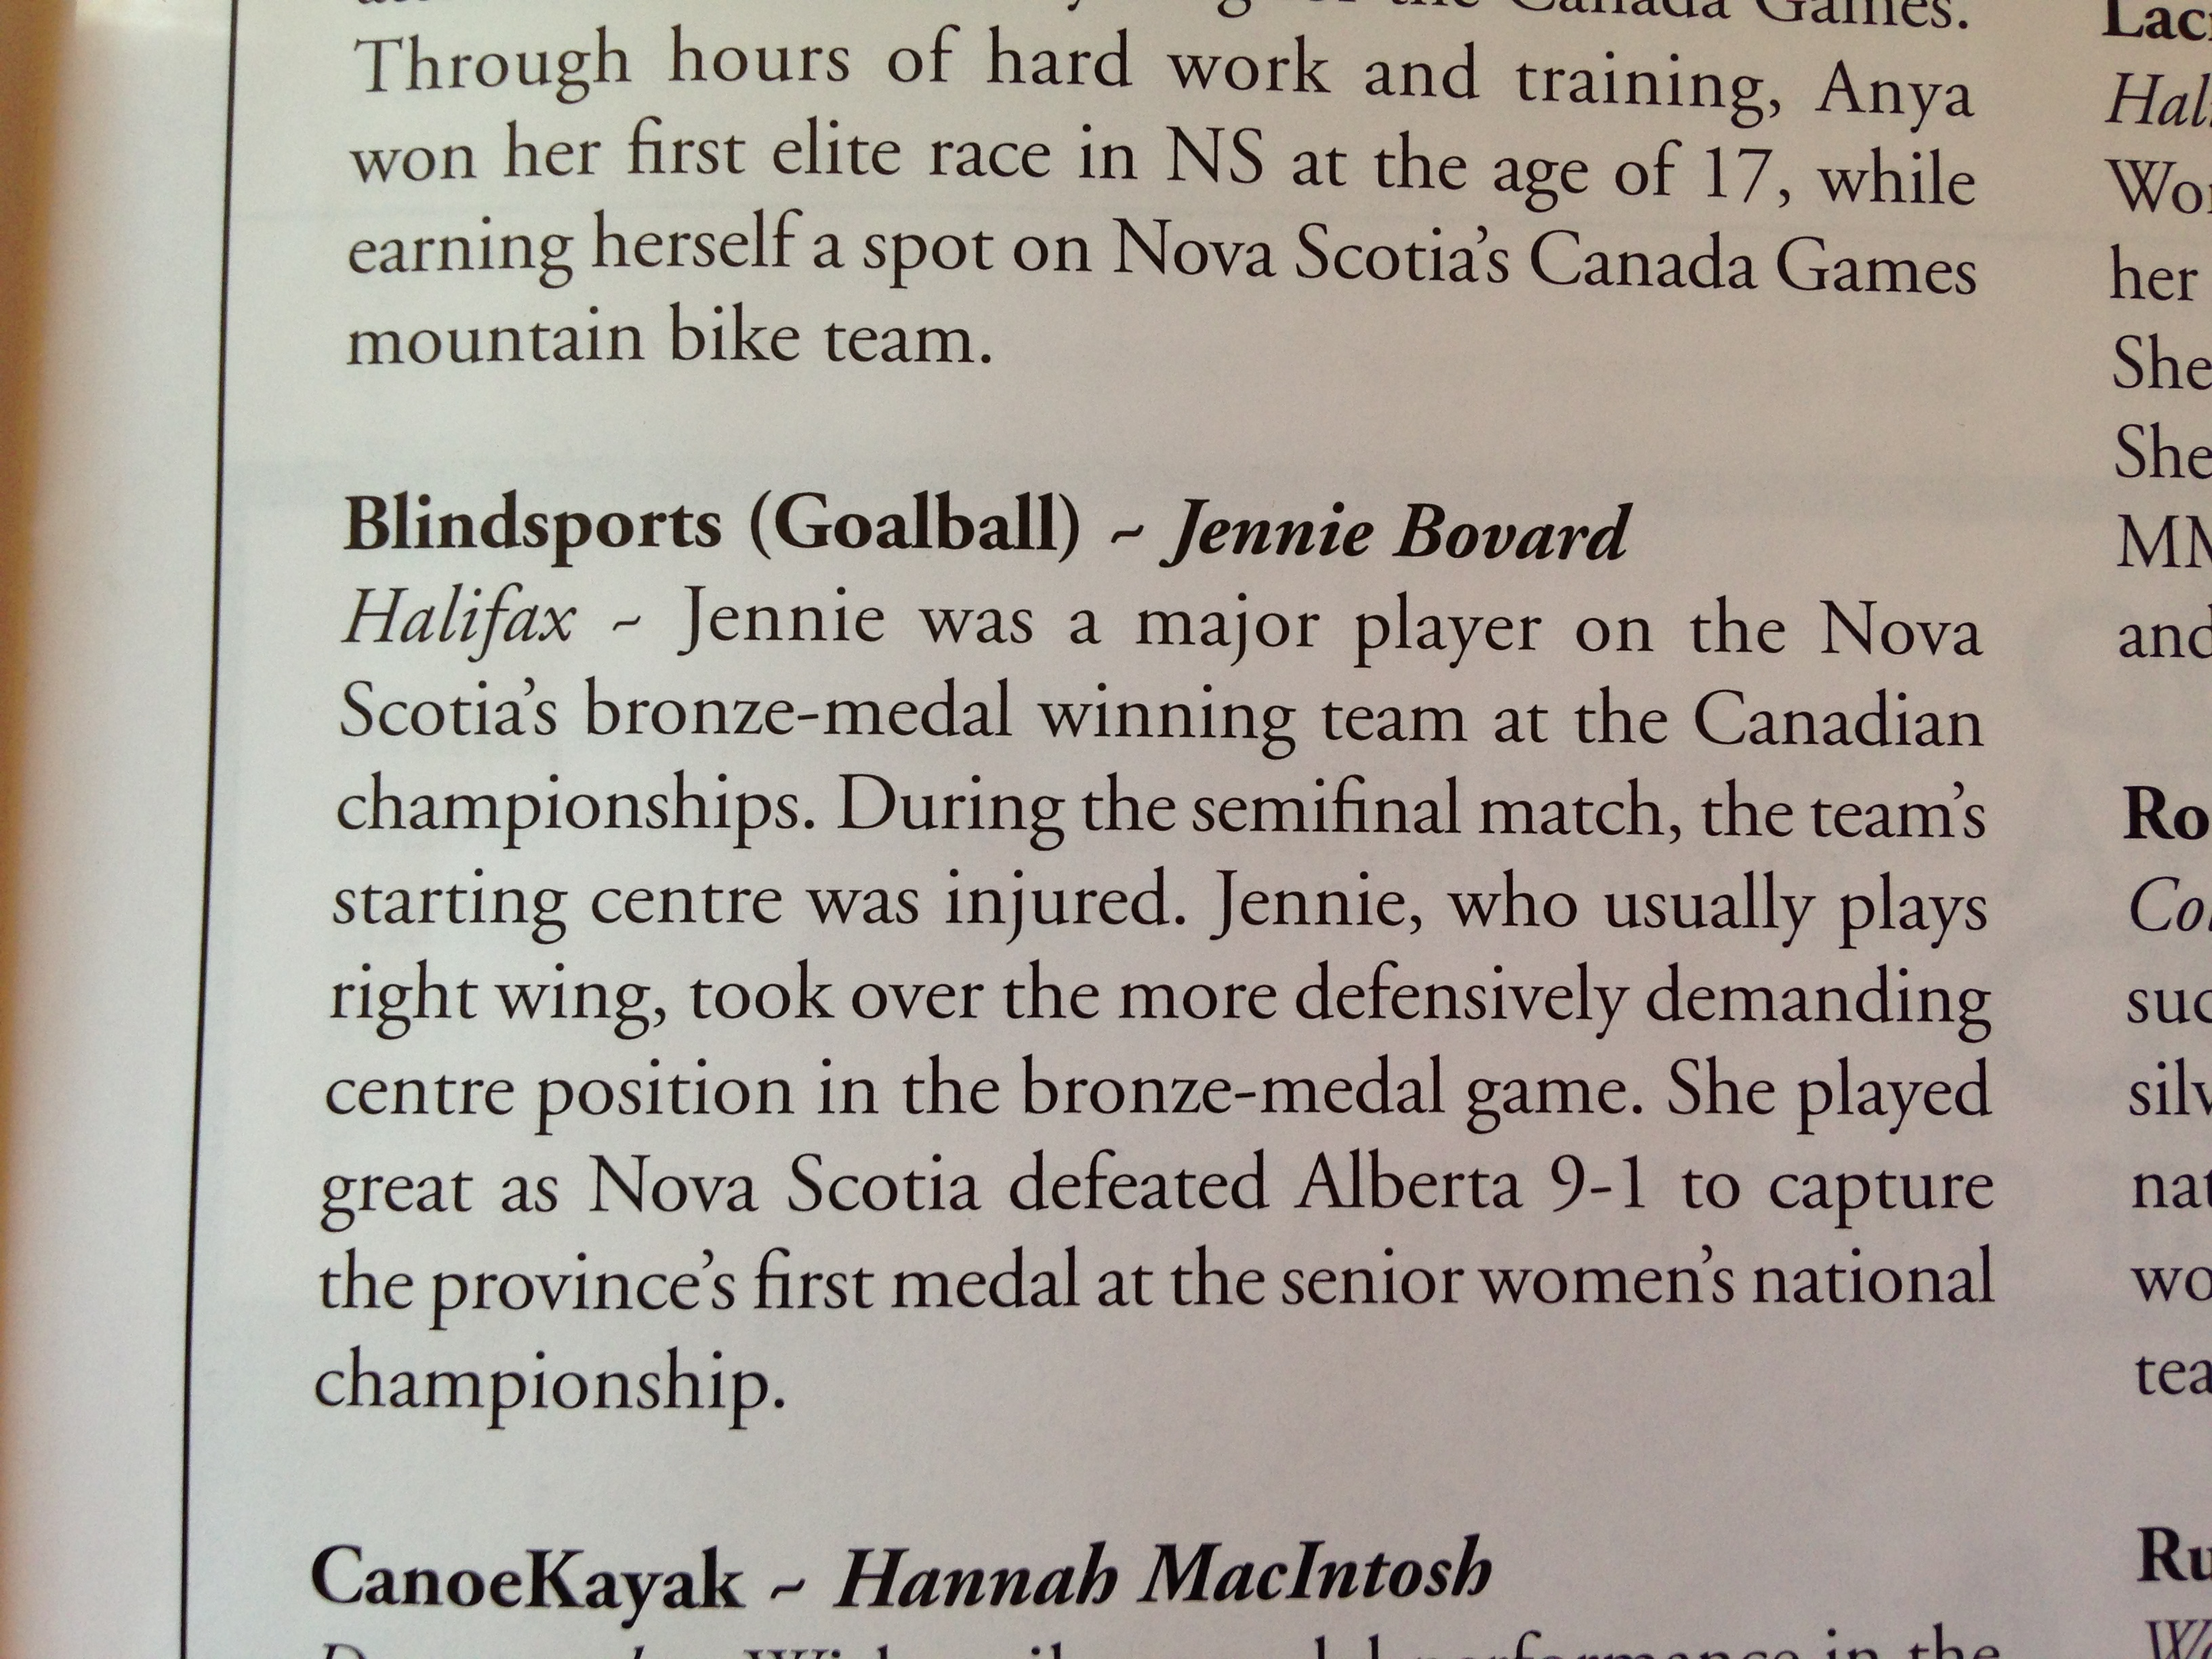 Female Team Athlete of the Year - Jennie Bovard, Halifax Jennie was a major player on Nova Scotia's bronze medal winning team at the Canadian championships. During the semi-final match, the team's starting centre was injured, Jennie, who usually plays right wing, took over the more defensively demanding centre position in the bronze medal game. She played great as Nova Scotia defeated Alberta 9 to 1 to capture the pronvince's first medalat the senior women's national championship.